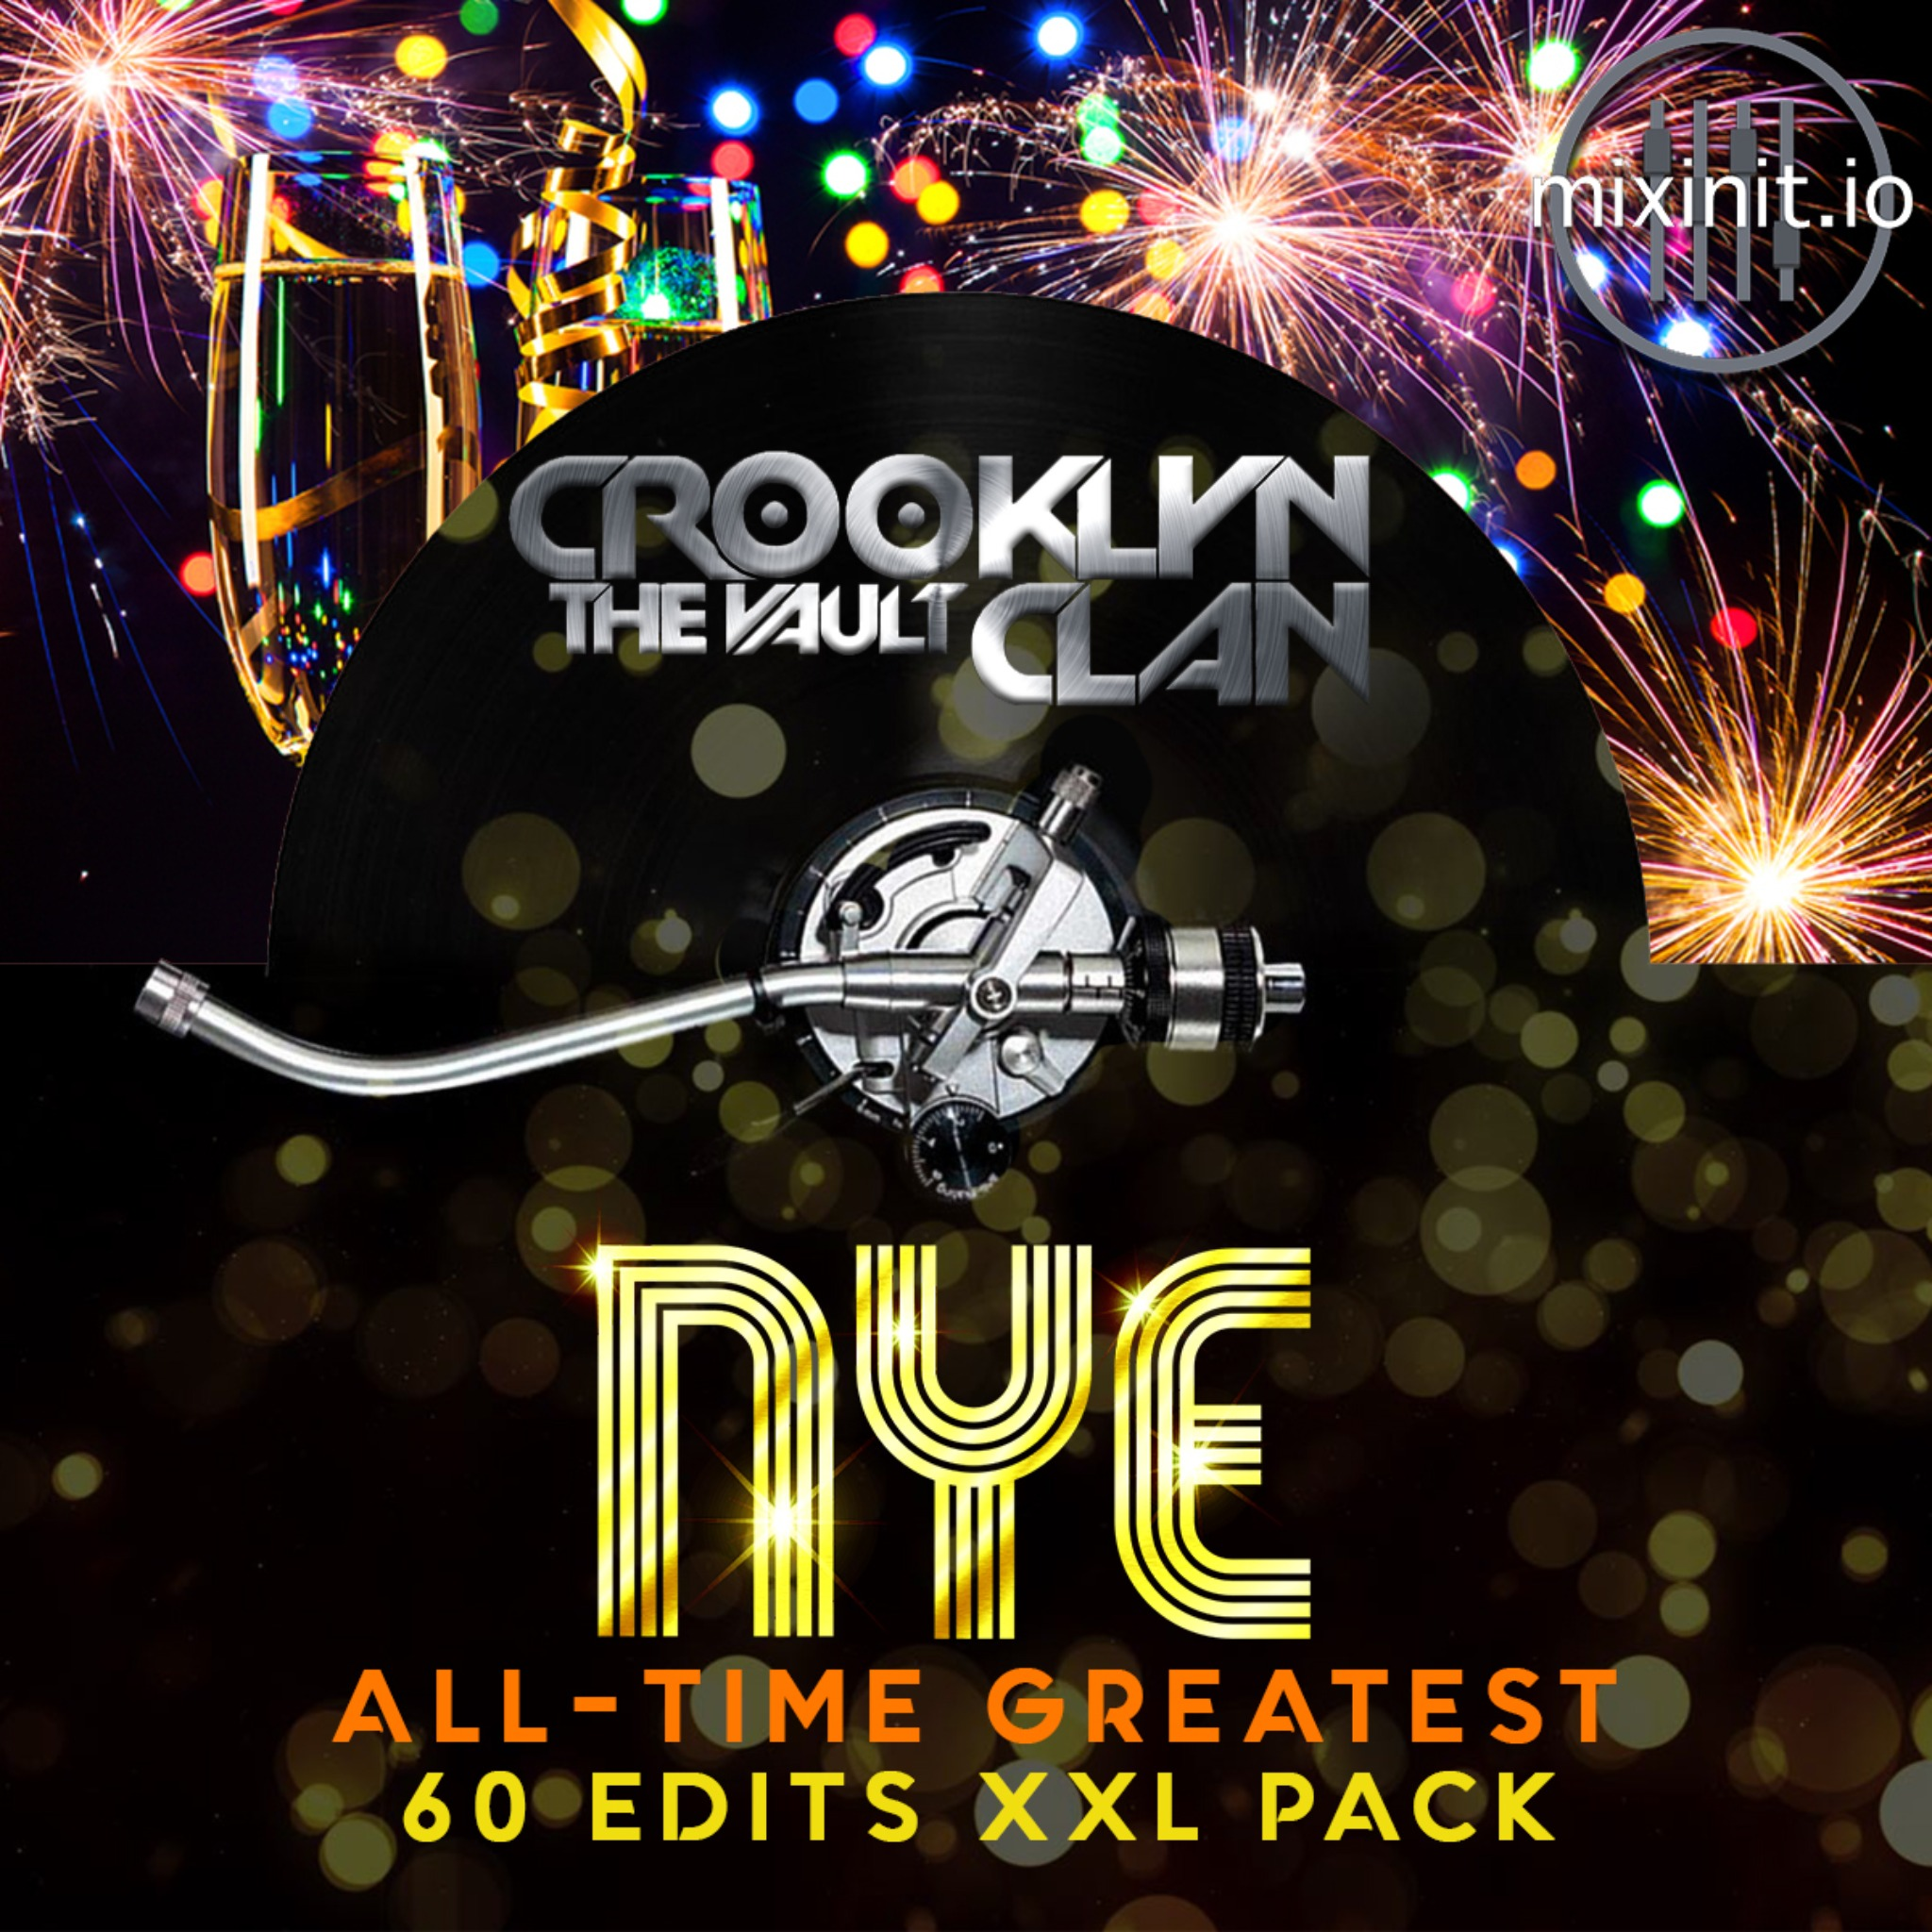 Best Of The Crooklyn Clan Vault New Years Eve Mega Pack (60 Edits)